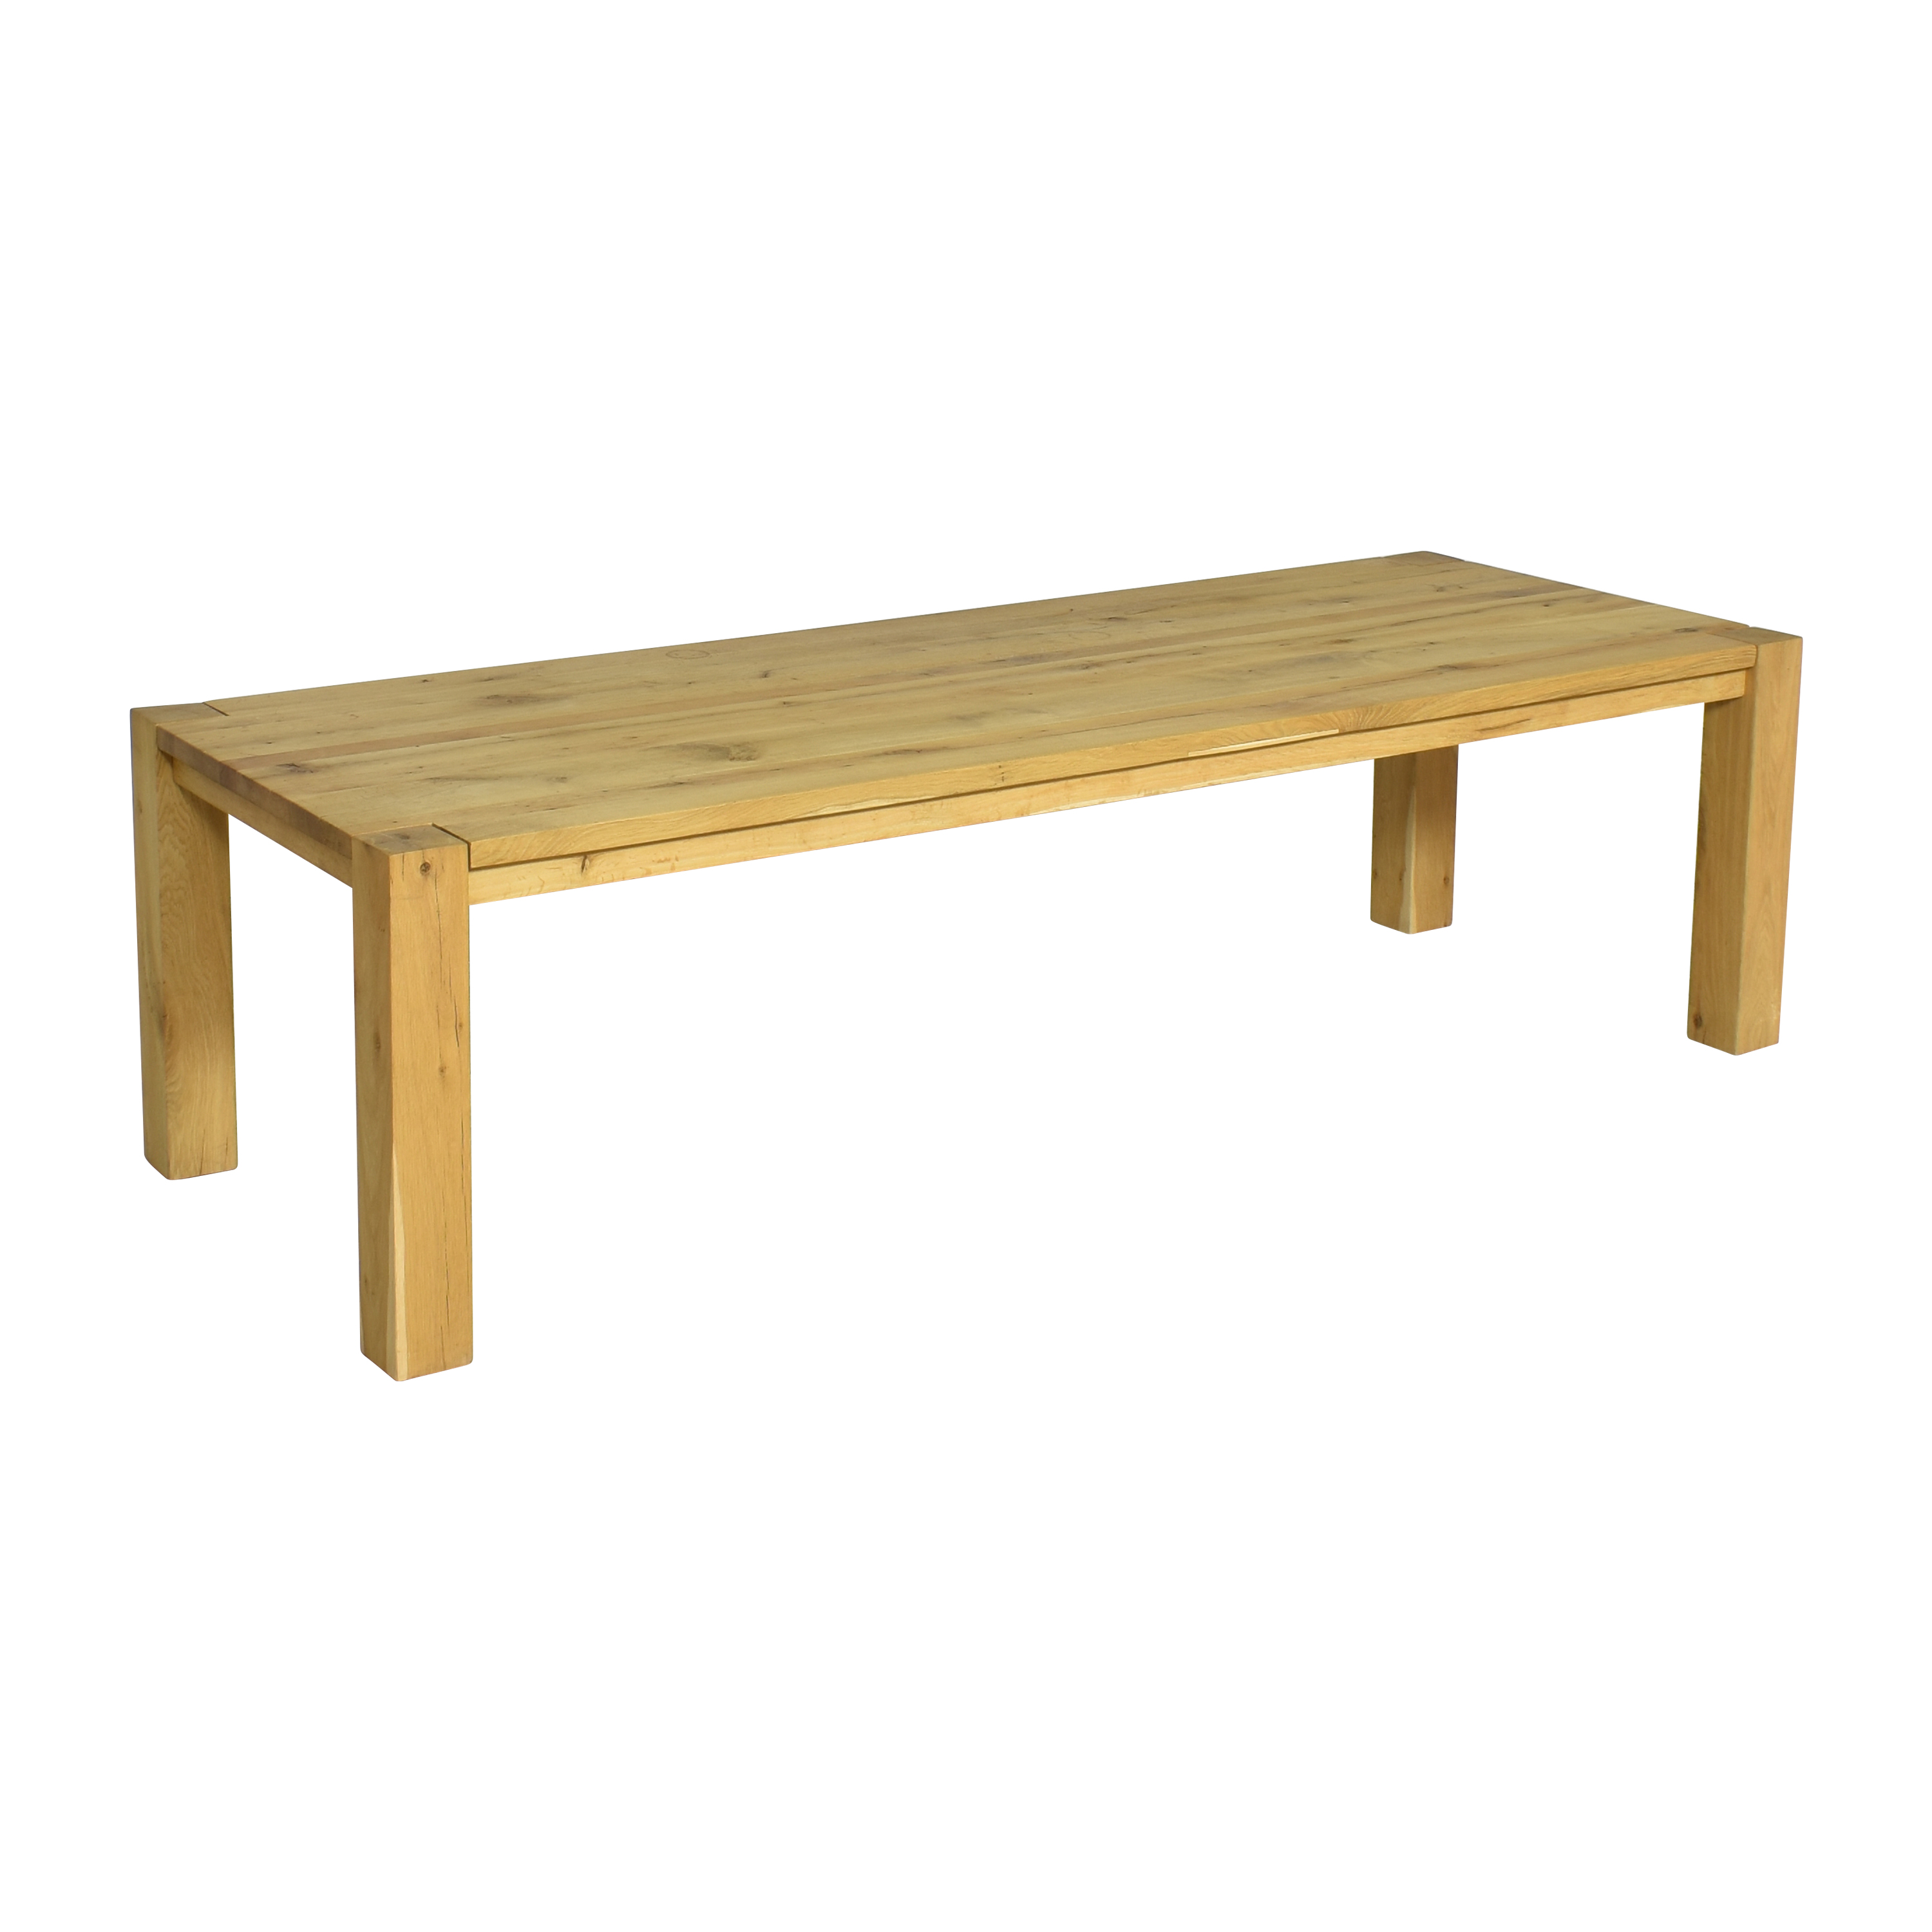 Restoration Hardware Restoration Hardware Reclaimed Parsons Rectangular Dining Table second hand